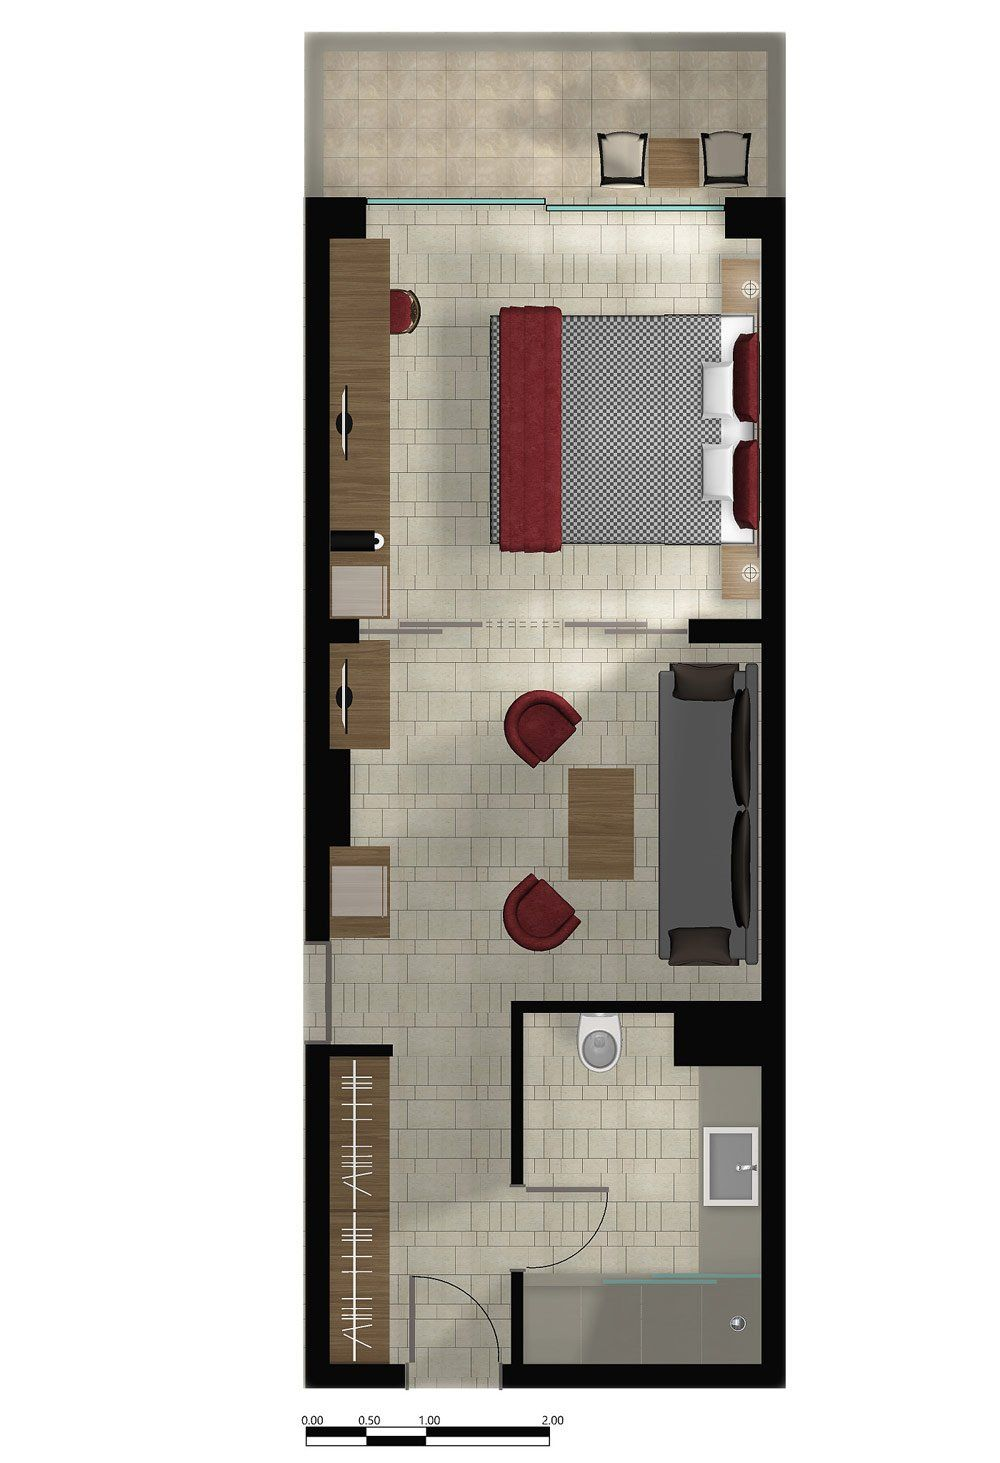 Eagles Palace Halkidiki Greece Family Suite With Garden View 40sqm 430 6sqft Hotel Room Design Plan Hotel Room Design Hotel Floor Plan